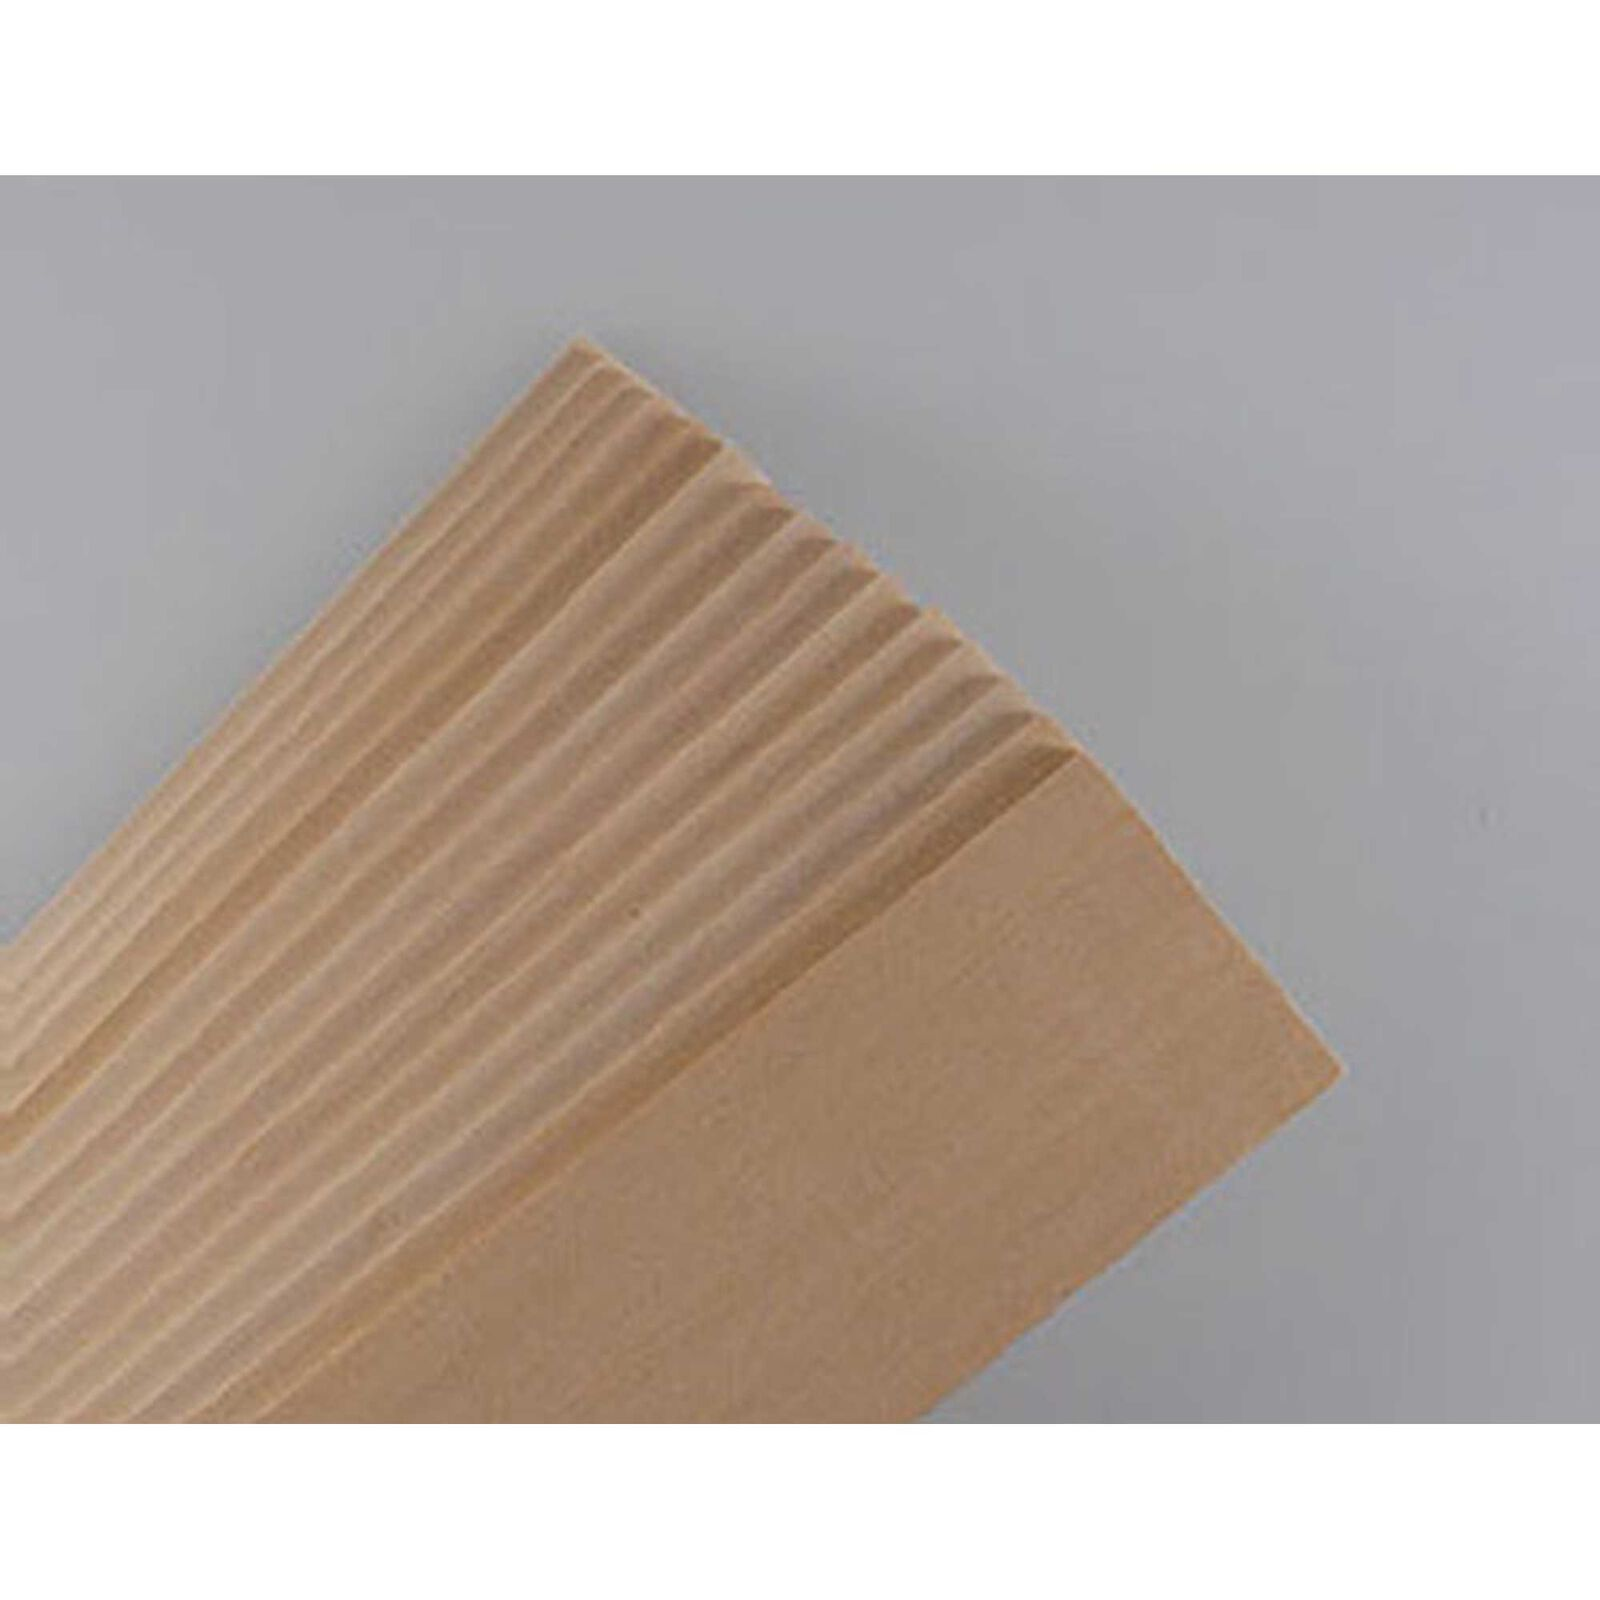 Basswood Sheets 1/8x2x24 (15)